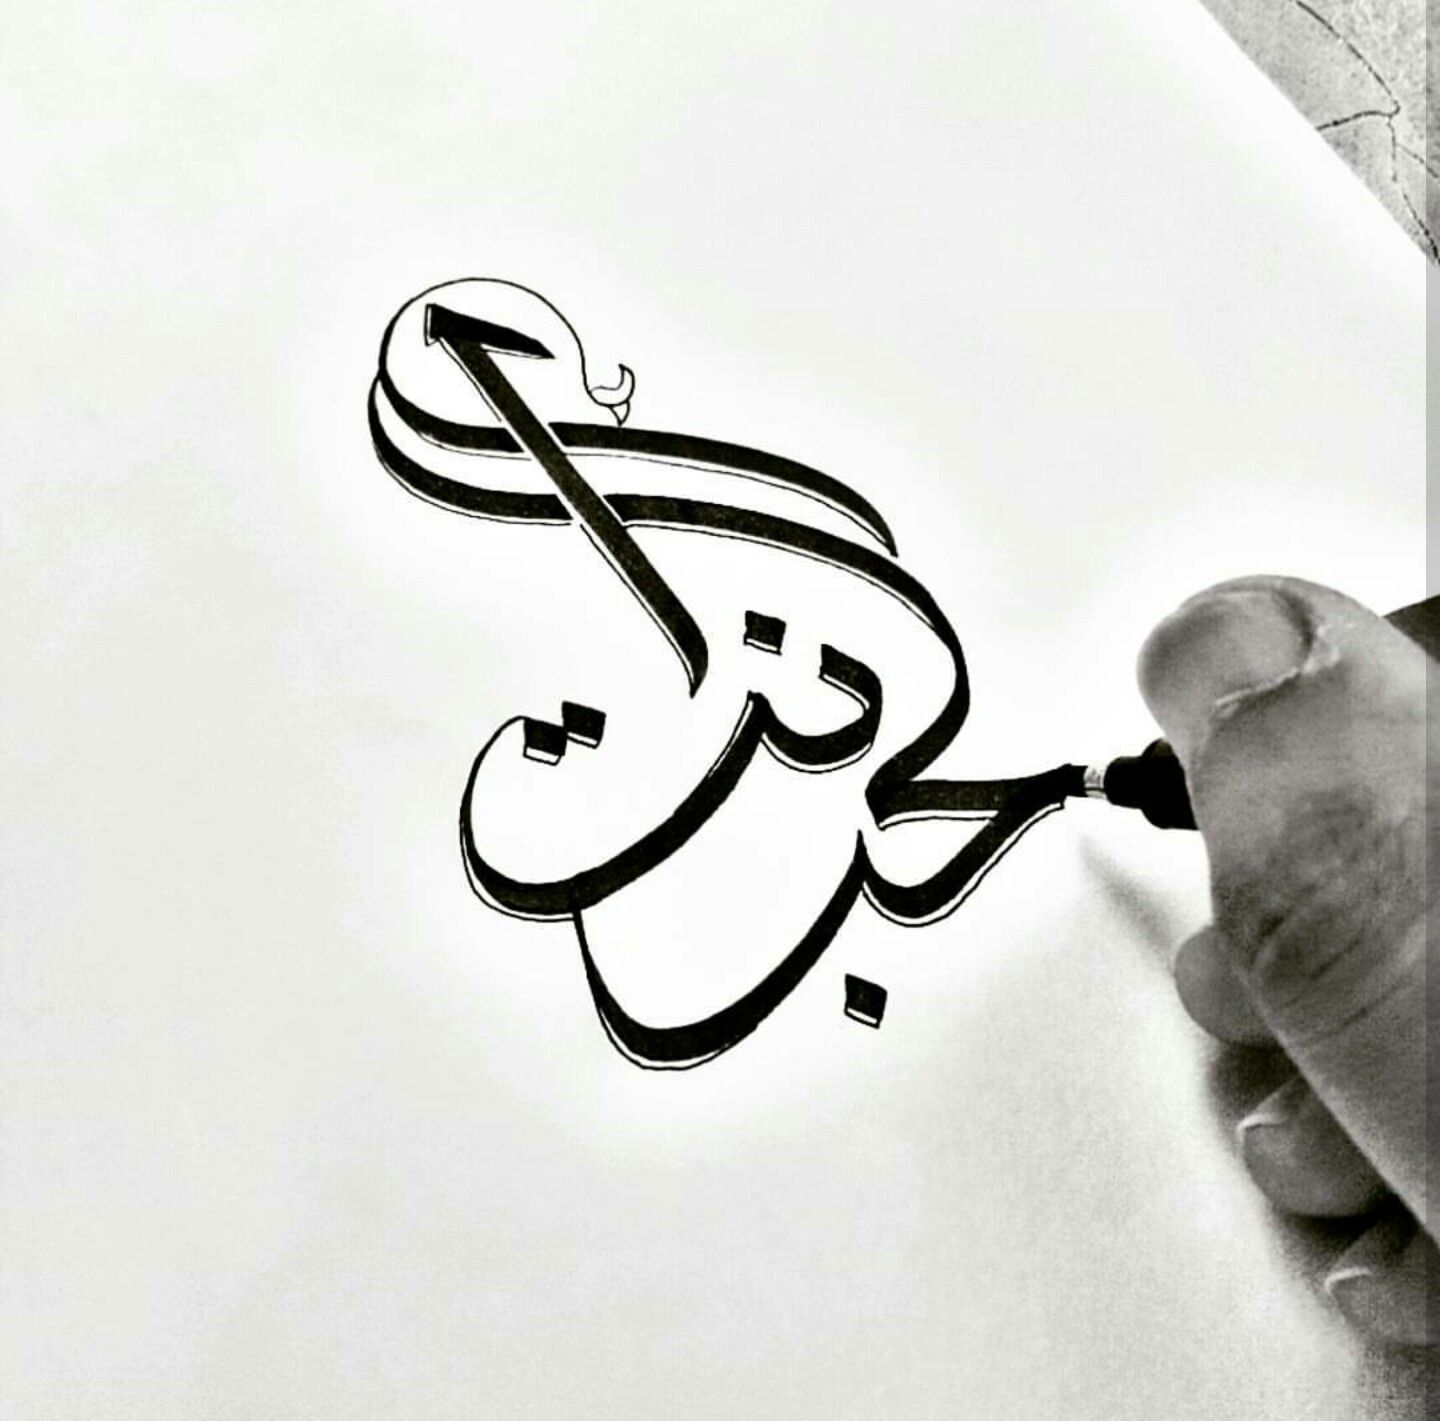 You Are The Love أنت الحب Infinity Tattoo Arabic Calligraphy Calligraphy